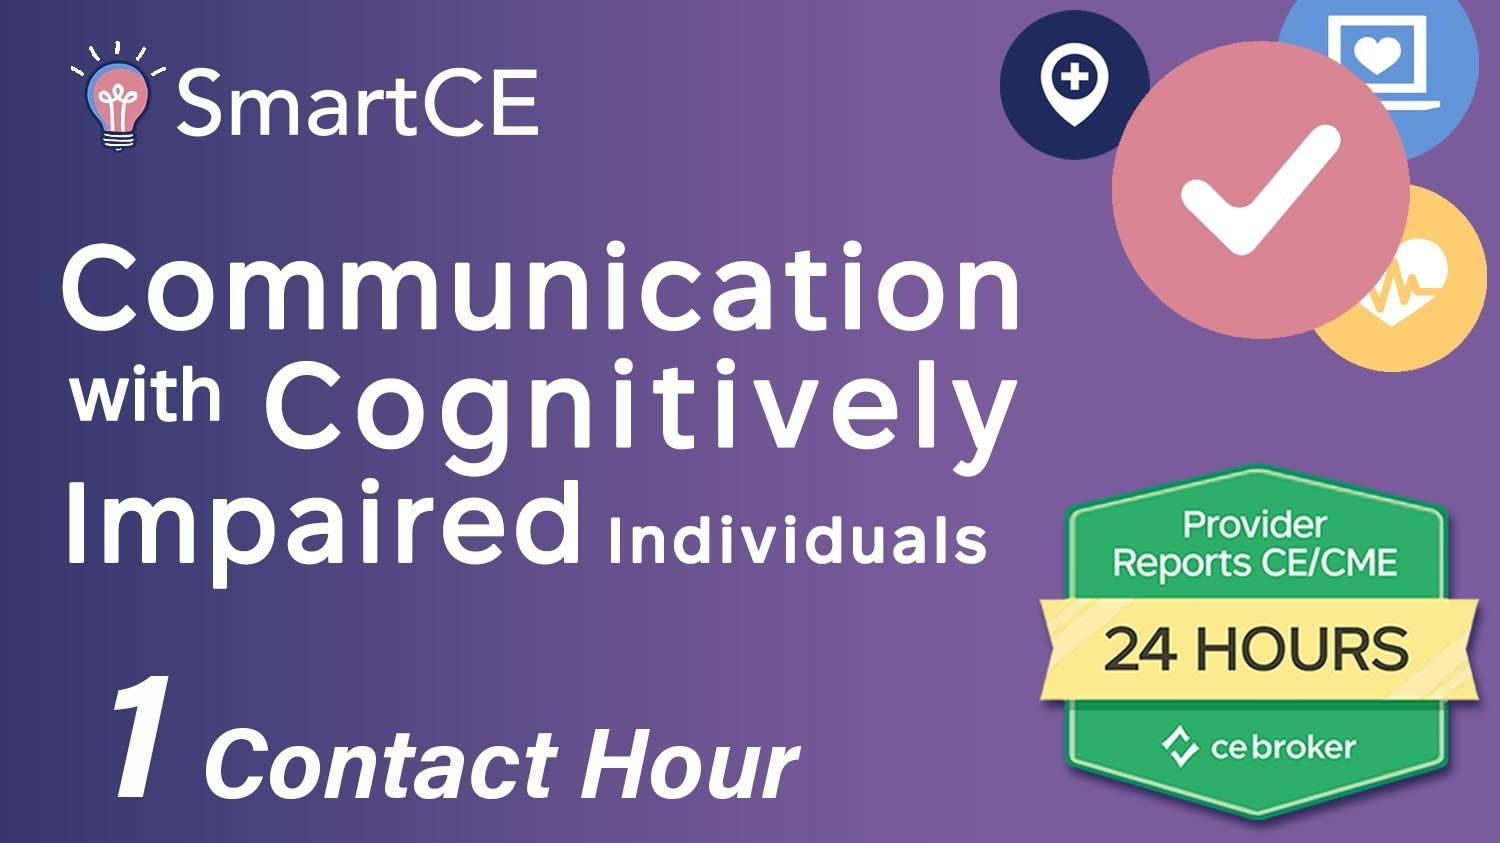 .Communication with Cognitively Impaired Individuals: 1 Contact Hour/20-577065